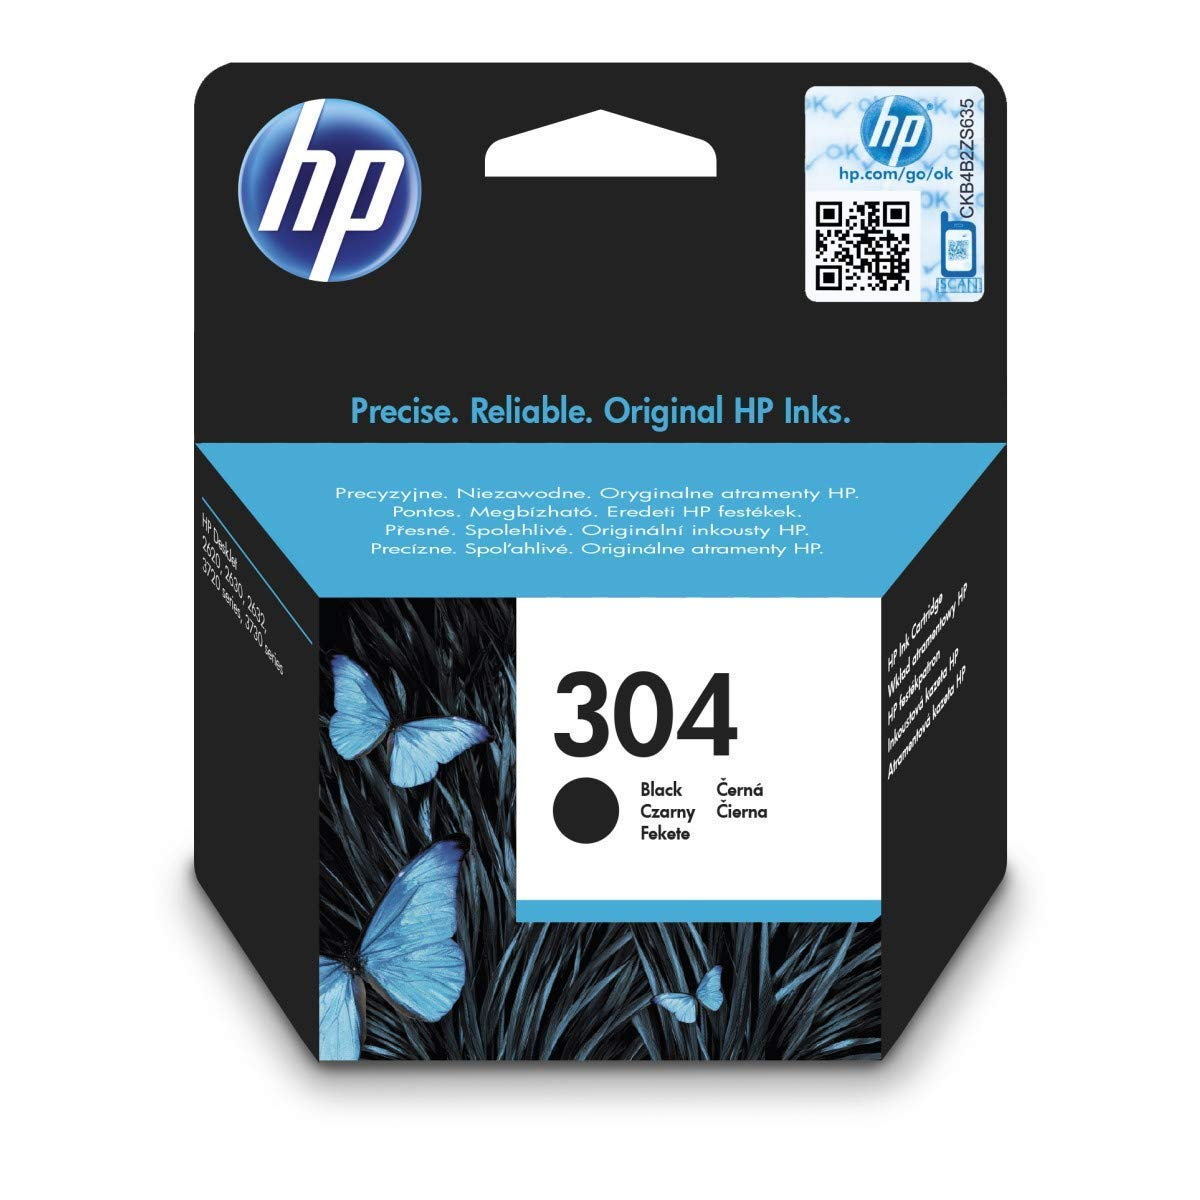 HP N9K06AE 304 Original Ink Cartridge, Black, Single Pack